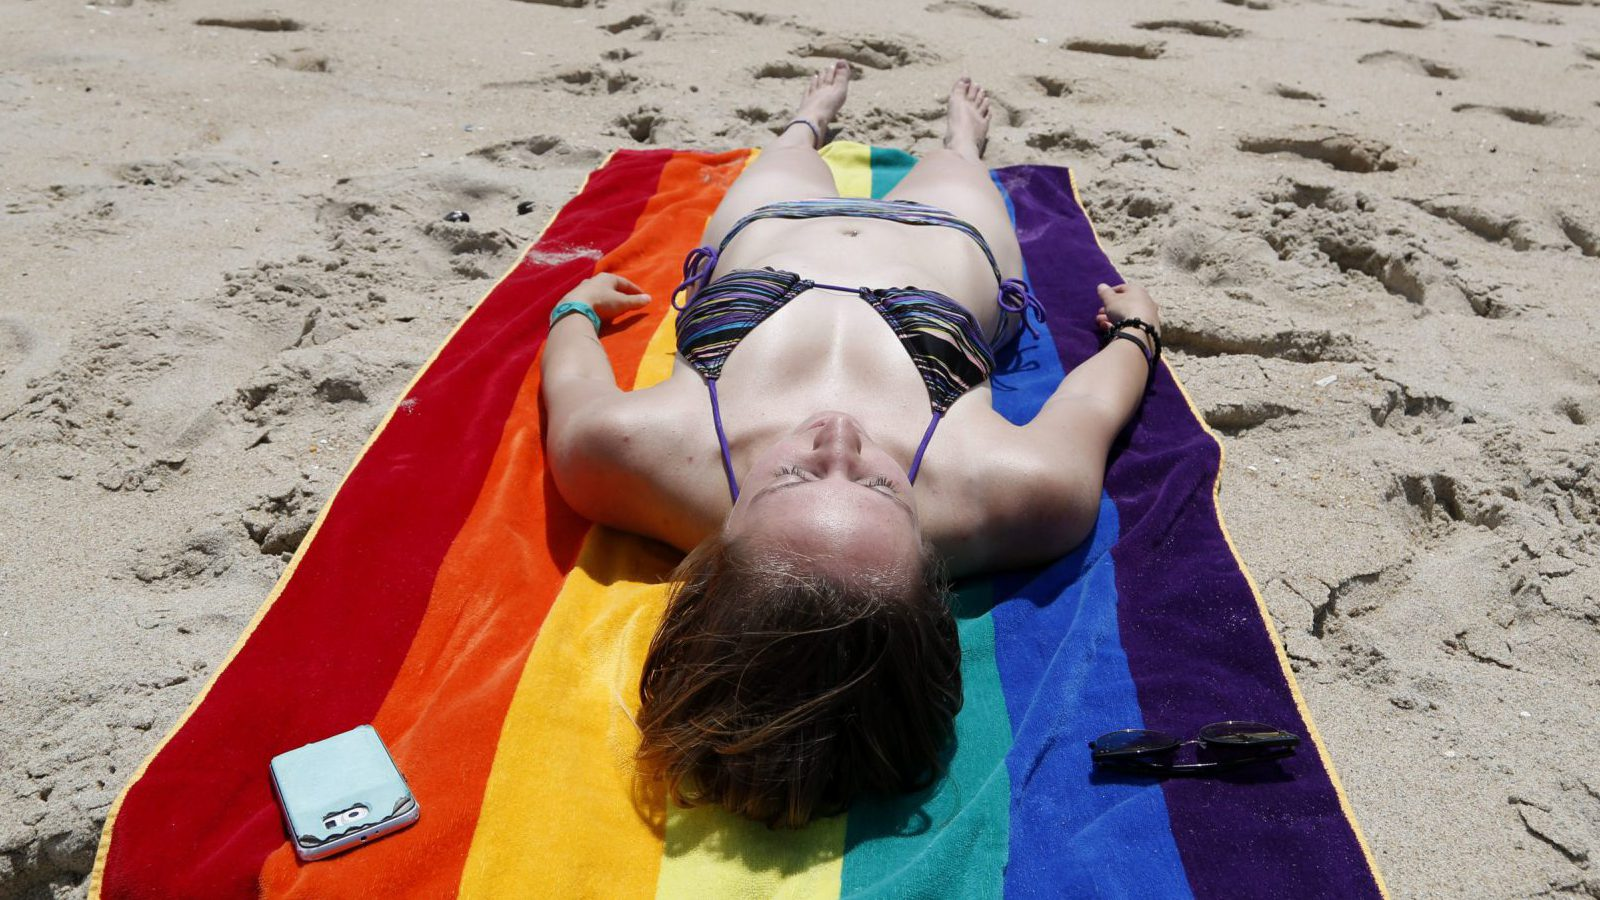 Erica Sleifer of Neptune, N.J., rests on the beach in Asbury Park, N.J., Wednesday, June 21, 2017. June 21 is the summer solstice, the longest day of the year, which traditionally marks the first official day of summer.